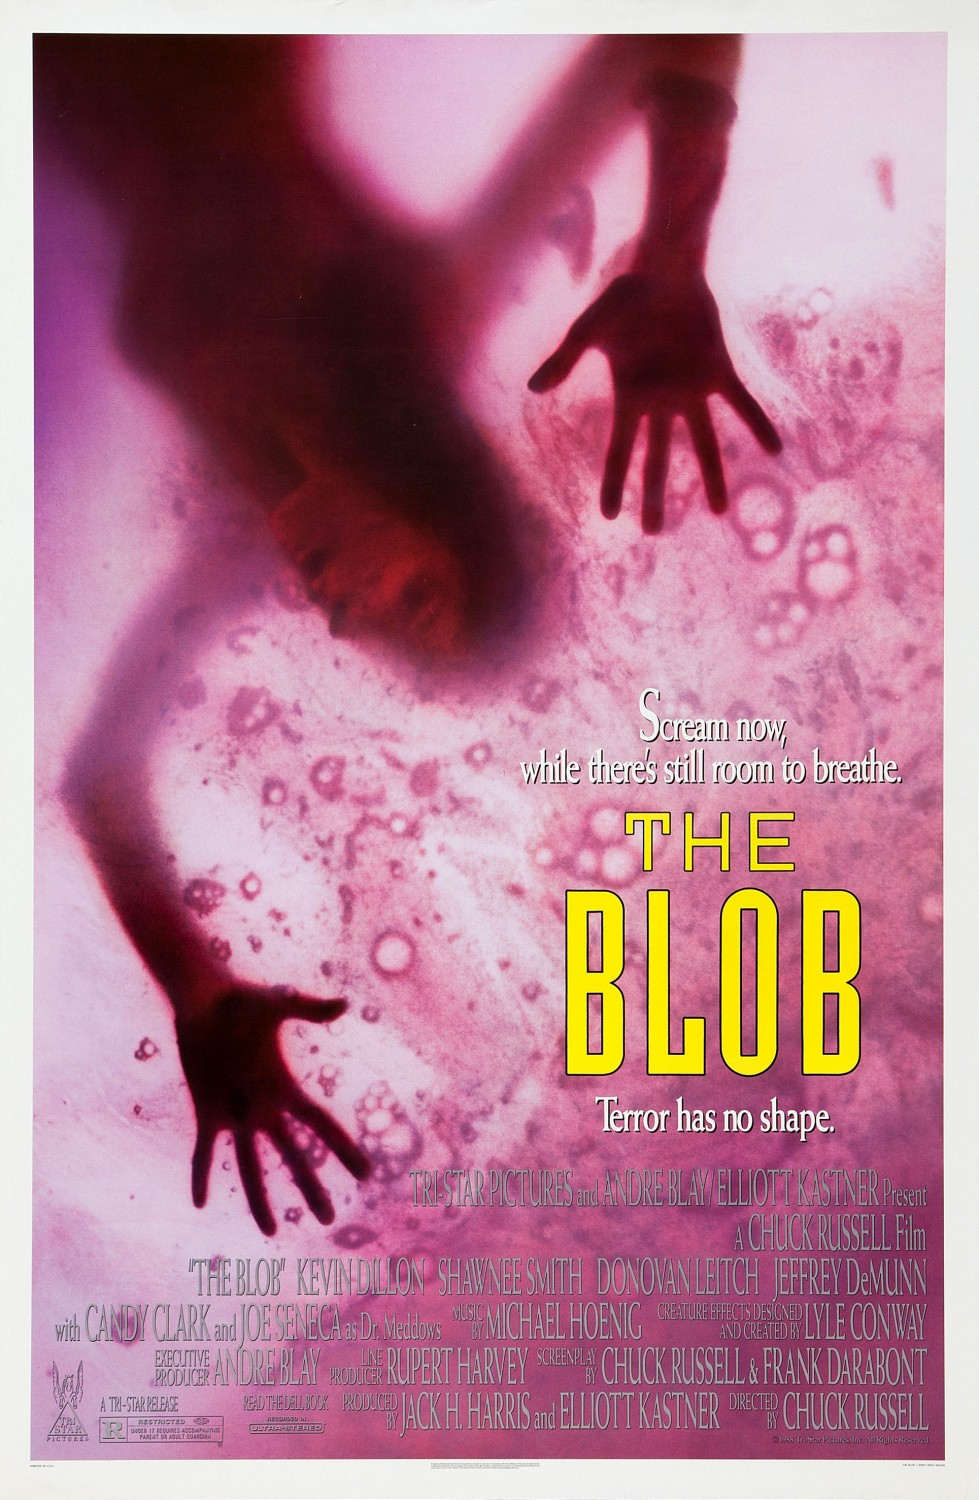 1980s Archives - Black Horror Movies